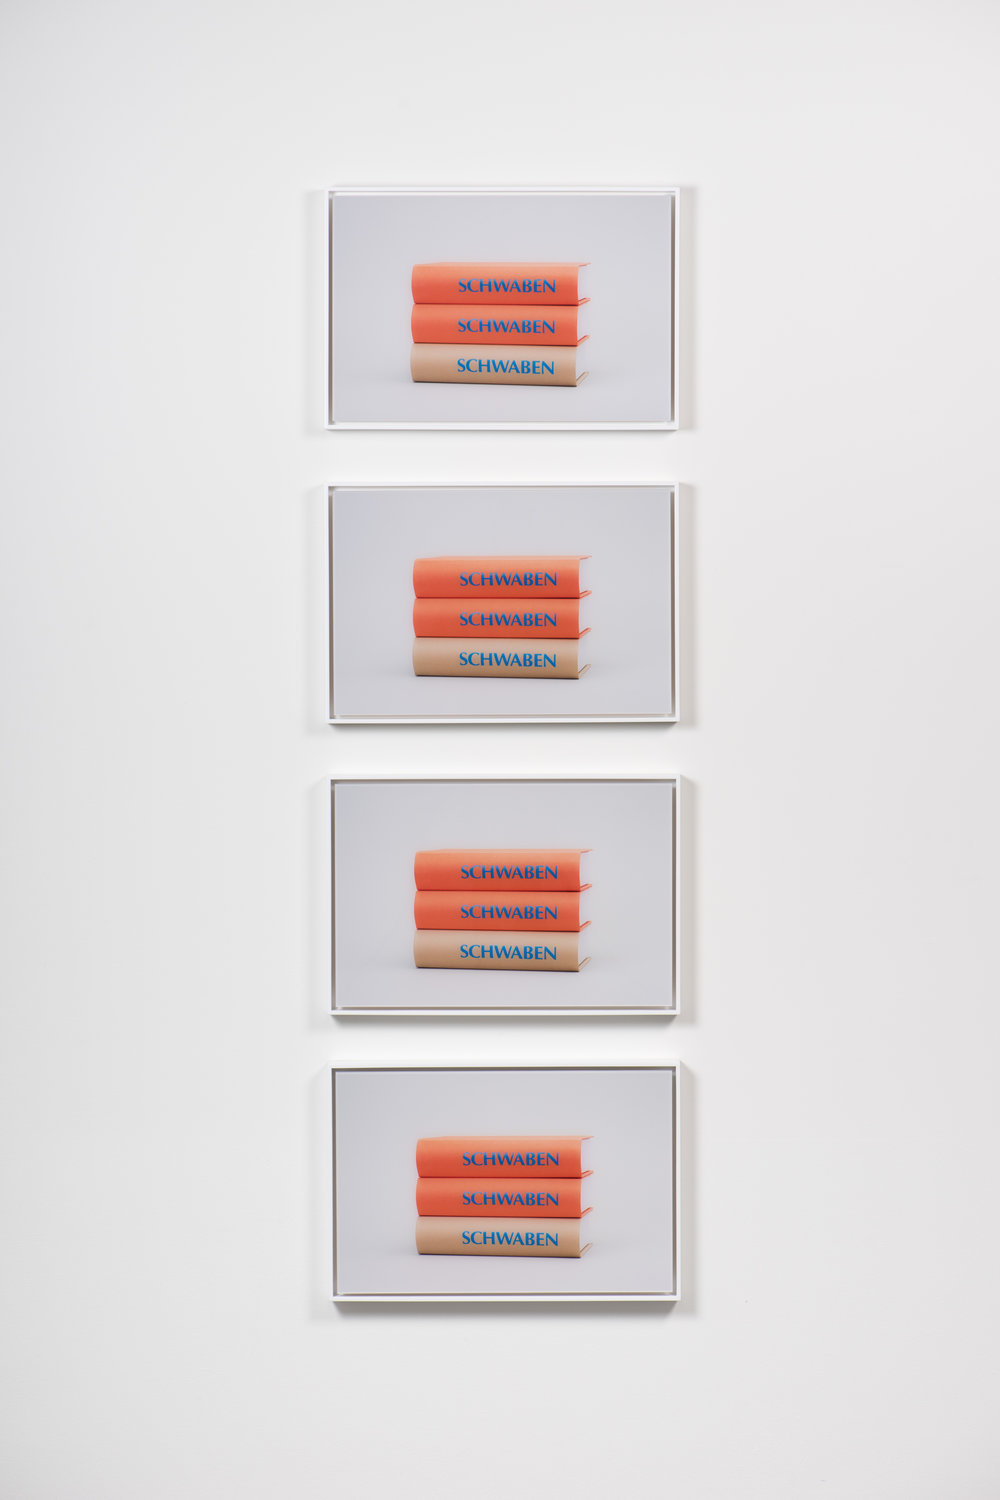 Schwaben (Stack), 2017 Four framed chromogenic prints 13 3/16 x 19 7/8 inches each Edition of 3 + 2 APs KISC-0011 $8,600